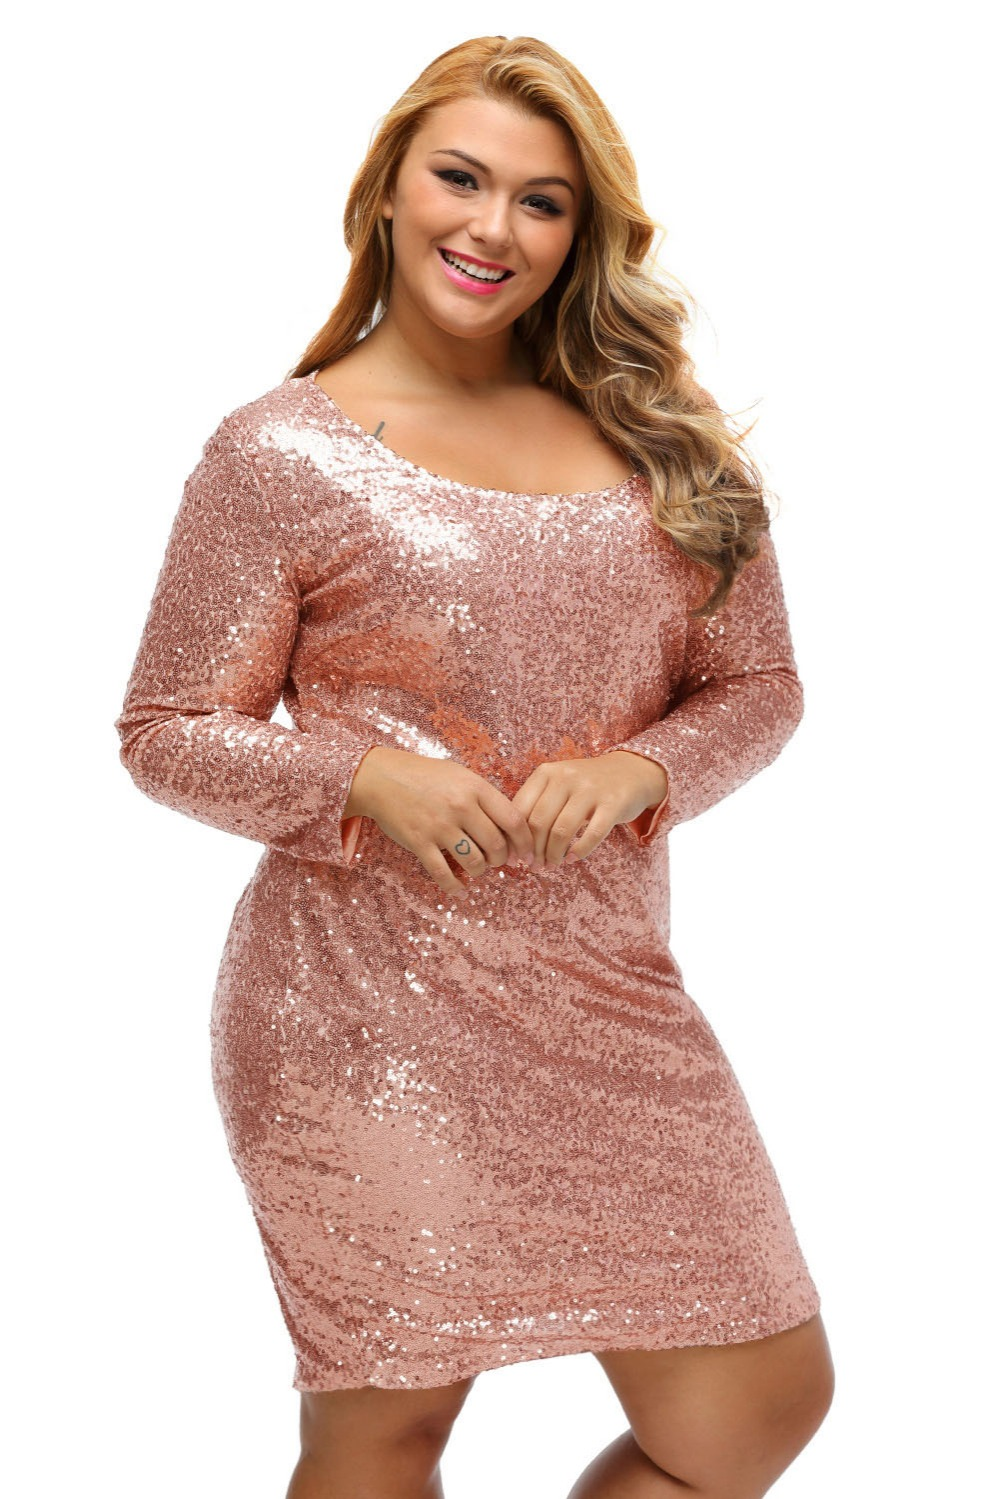 Summer Autumn Plus Size Dress For Women Glitter Sequined Long Sleeve Solid  Champagne Dresses Party Office Lentejuelas Vestido-in Dresses from Women s  ... b39f310081b8